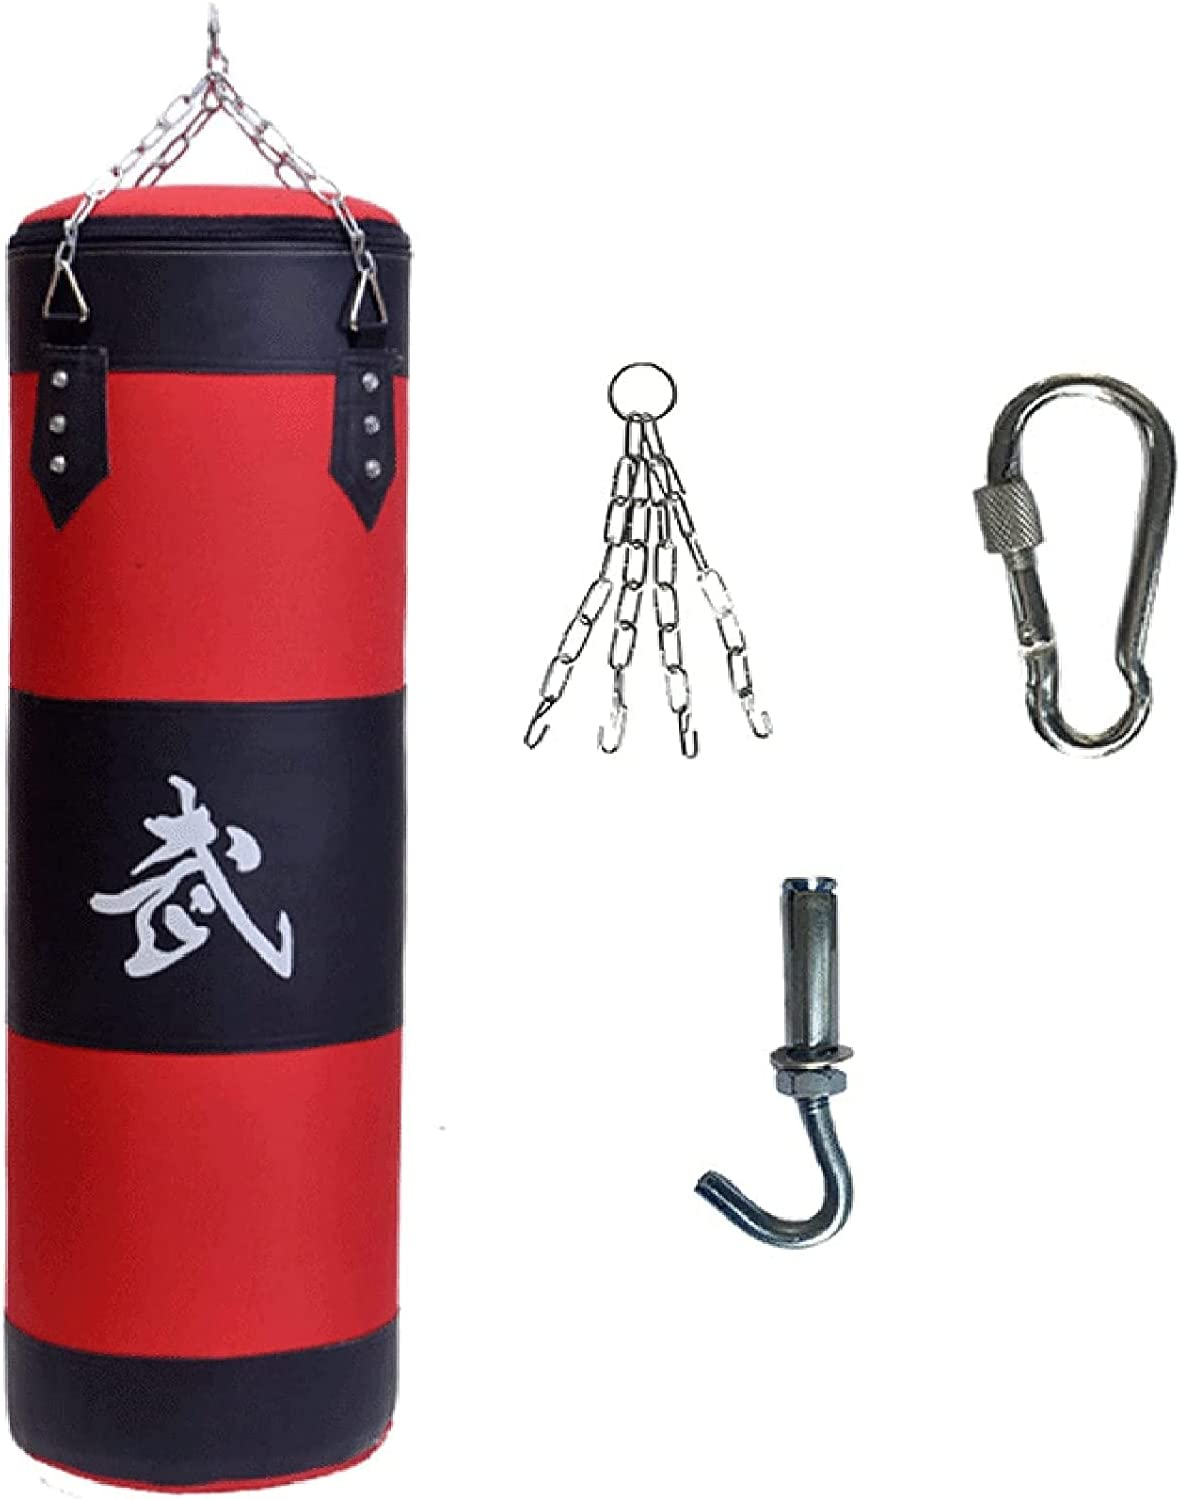 LSDRALOBBEB Max 49% OFF Punching Bag Punch for PU Thicken Leather Boxing Long Beach Mall